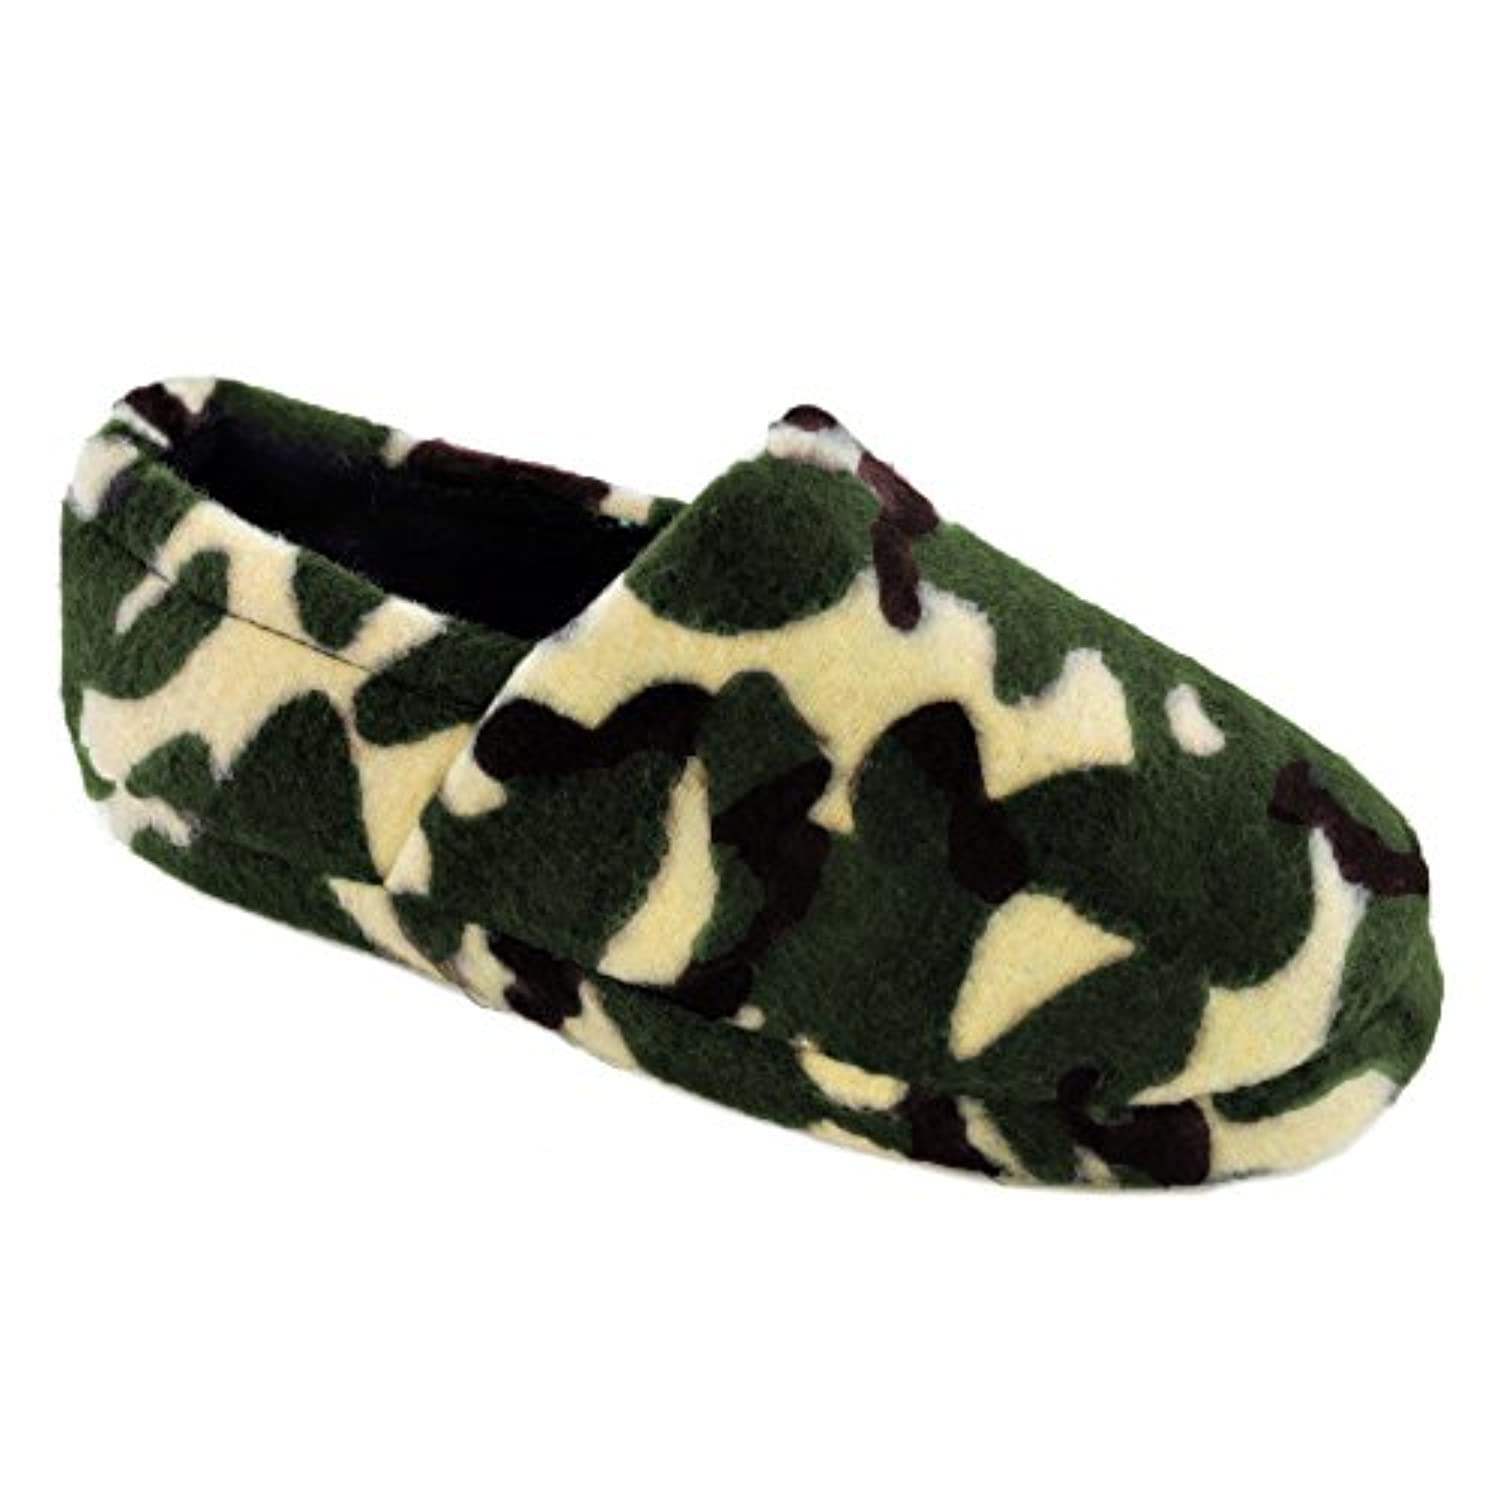 Kids Boys SlumberzzZ Camo Print Fleece Slipper With Elasticated Heel Grey 11-12